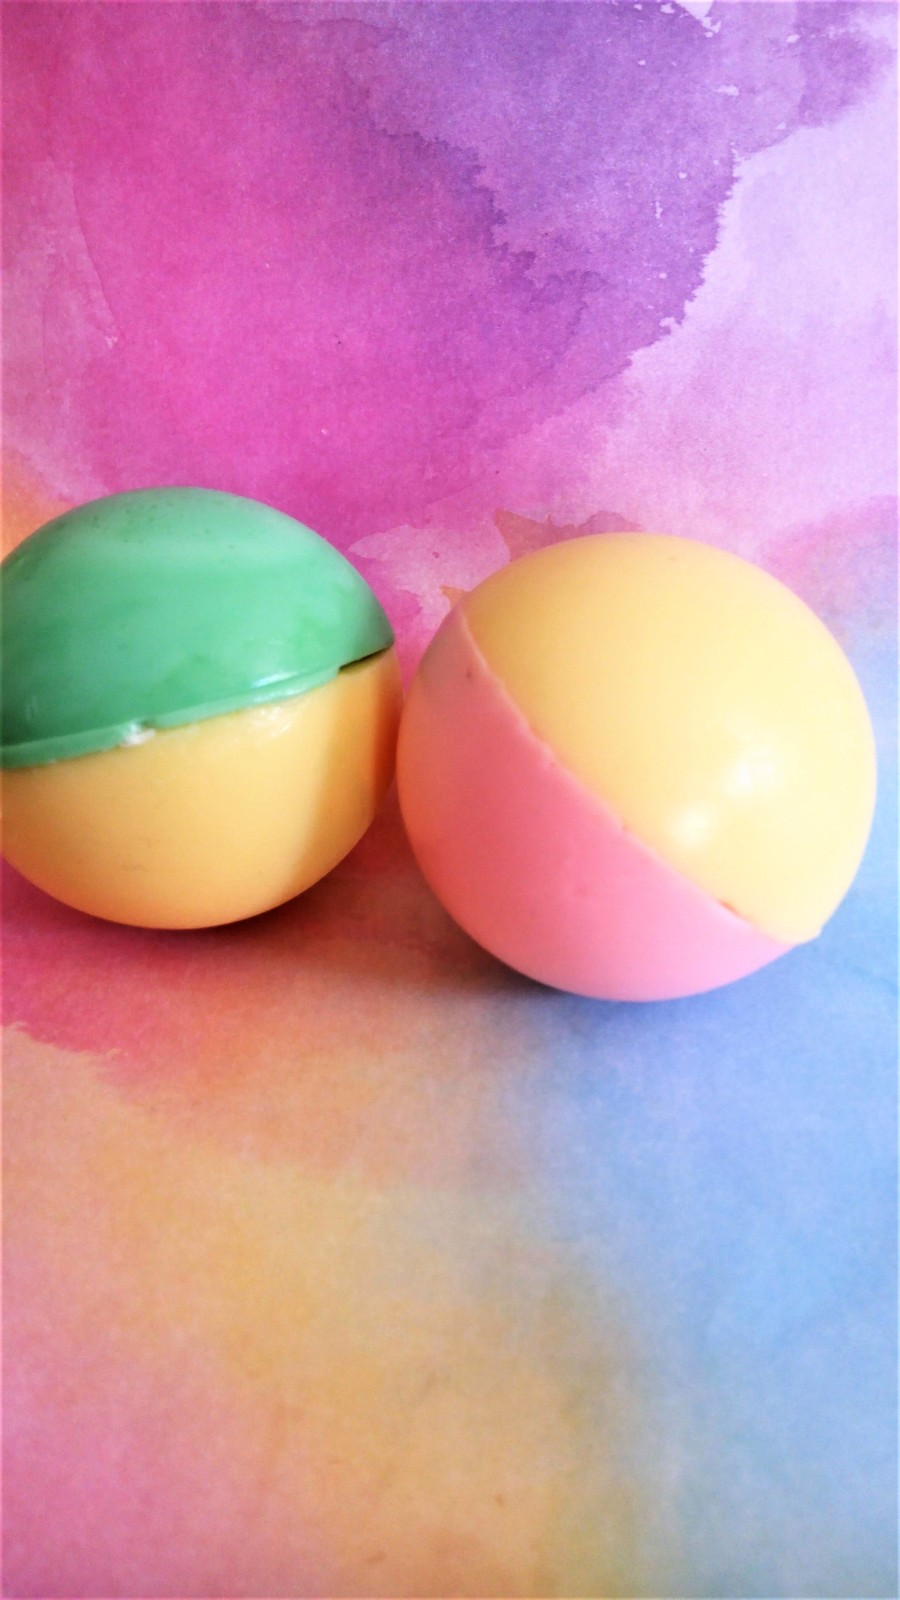 soap balls, health and beauty, bath and body, glycerin soap, beauty, gifts, set  - $7.00